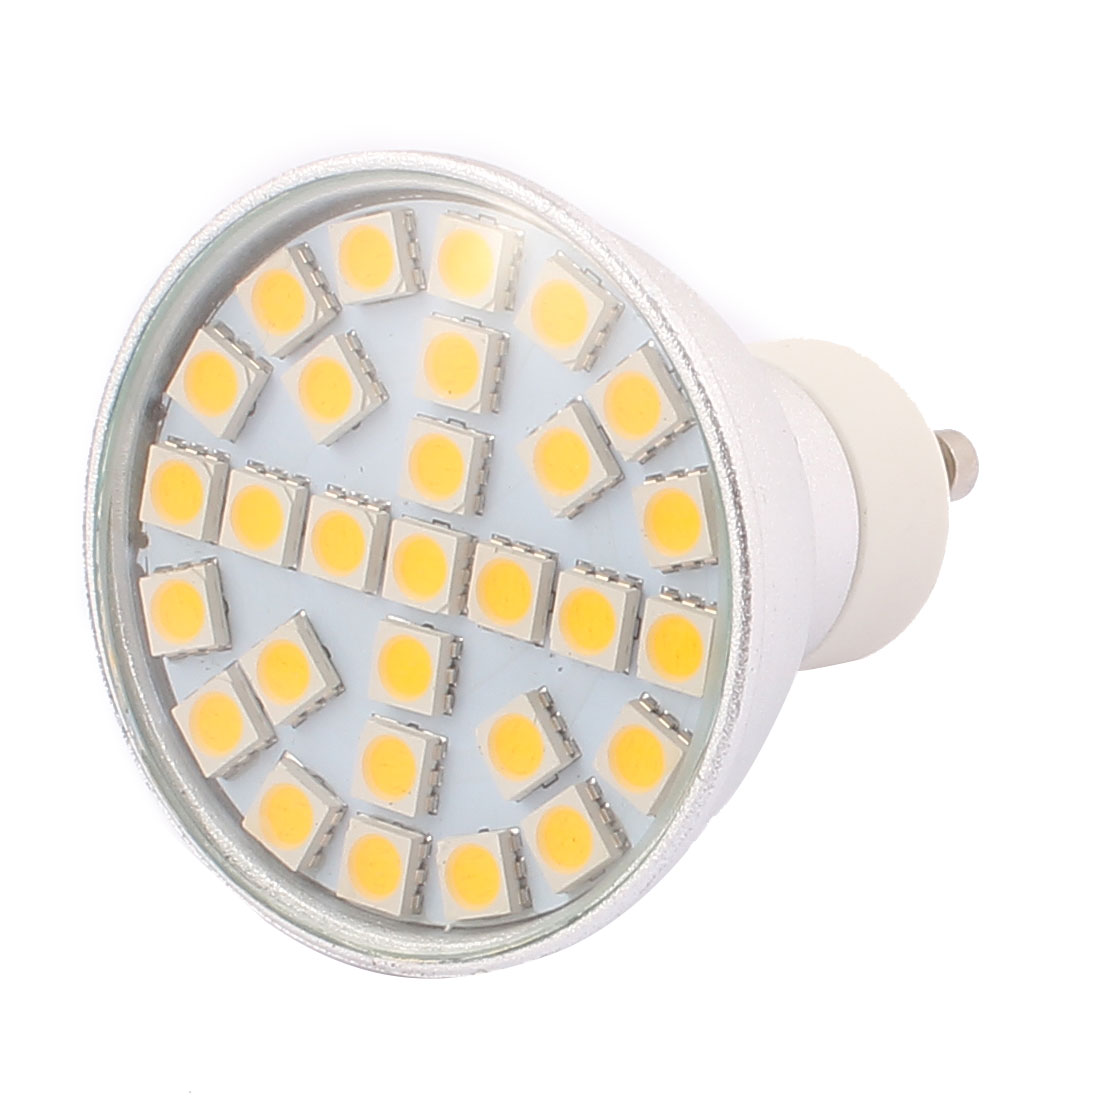 GU10 SMD5050 29LEDs Aluminum Energy Saving LED Lamp Bulb Warm White AC 220V 5W